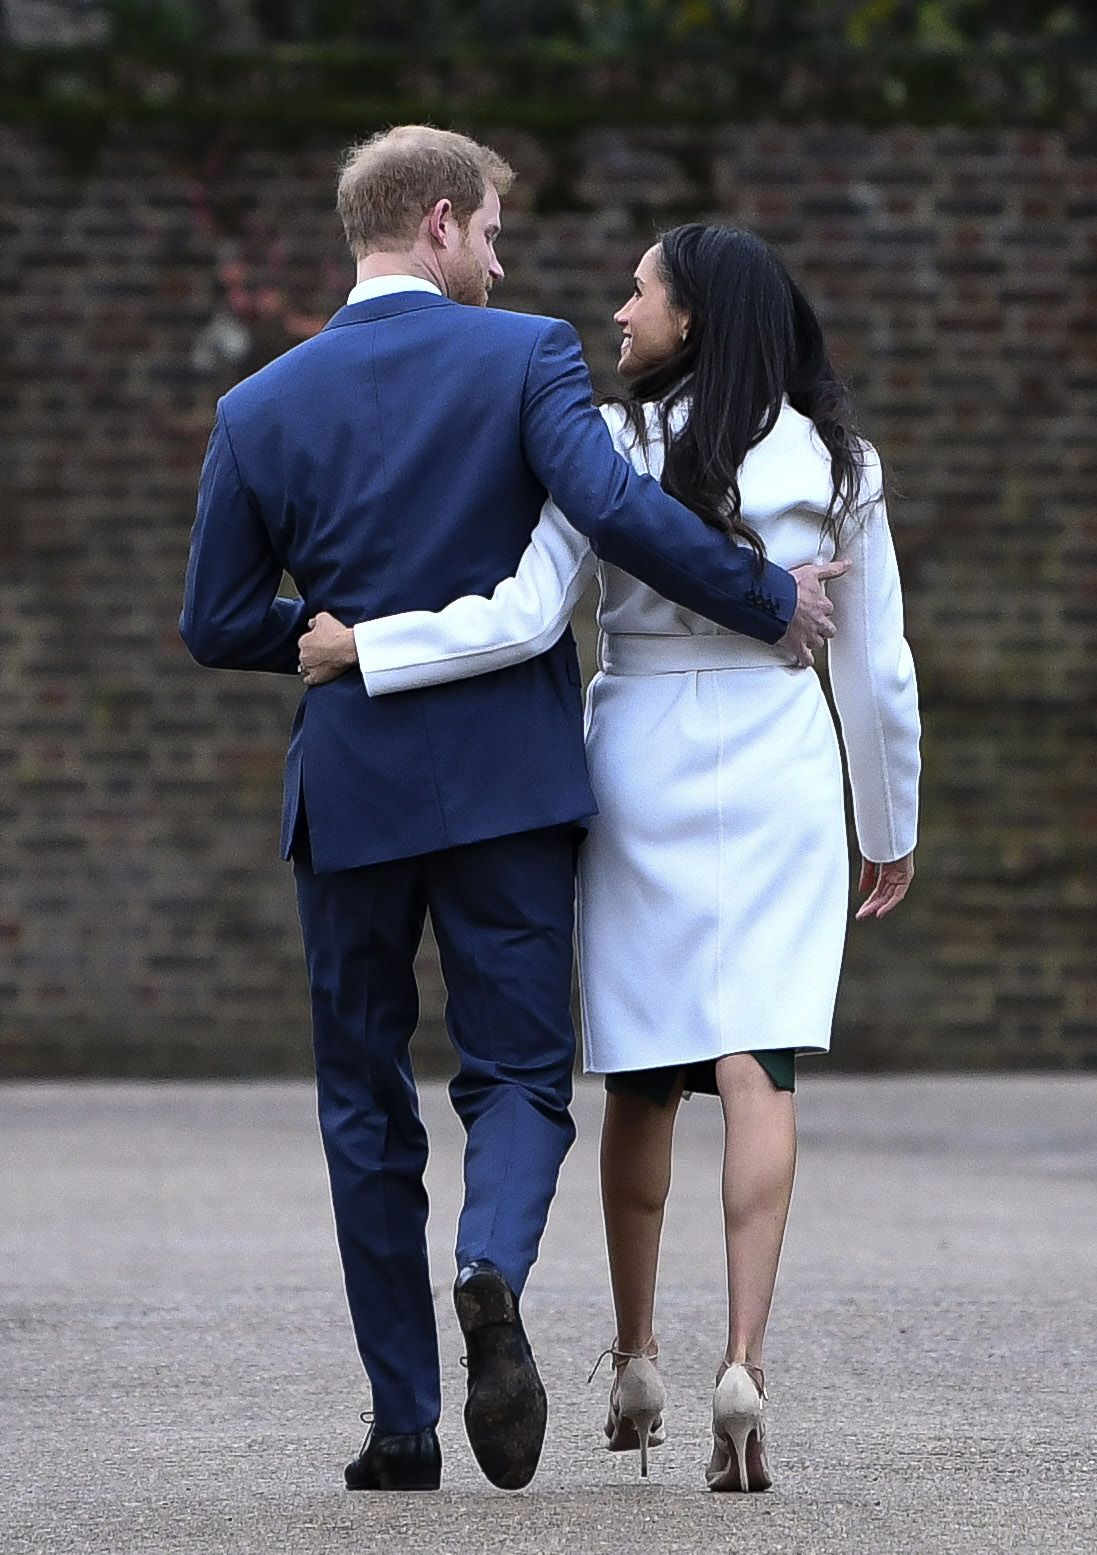 Body Language Experts Analyze Prince Harry and Meghan